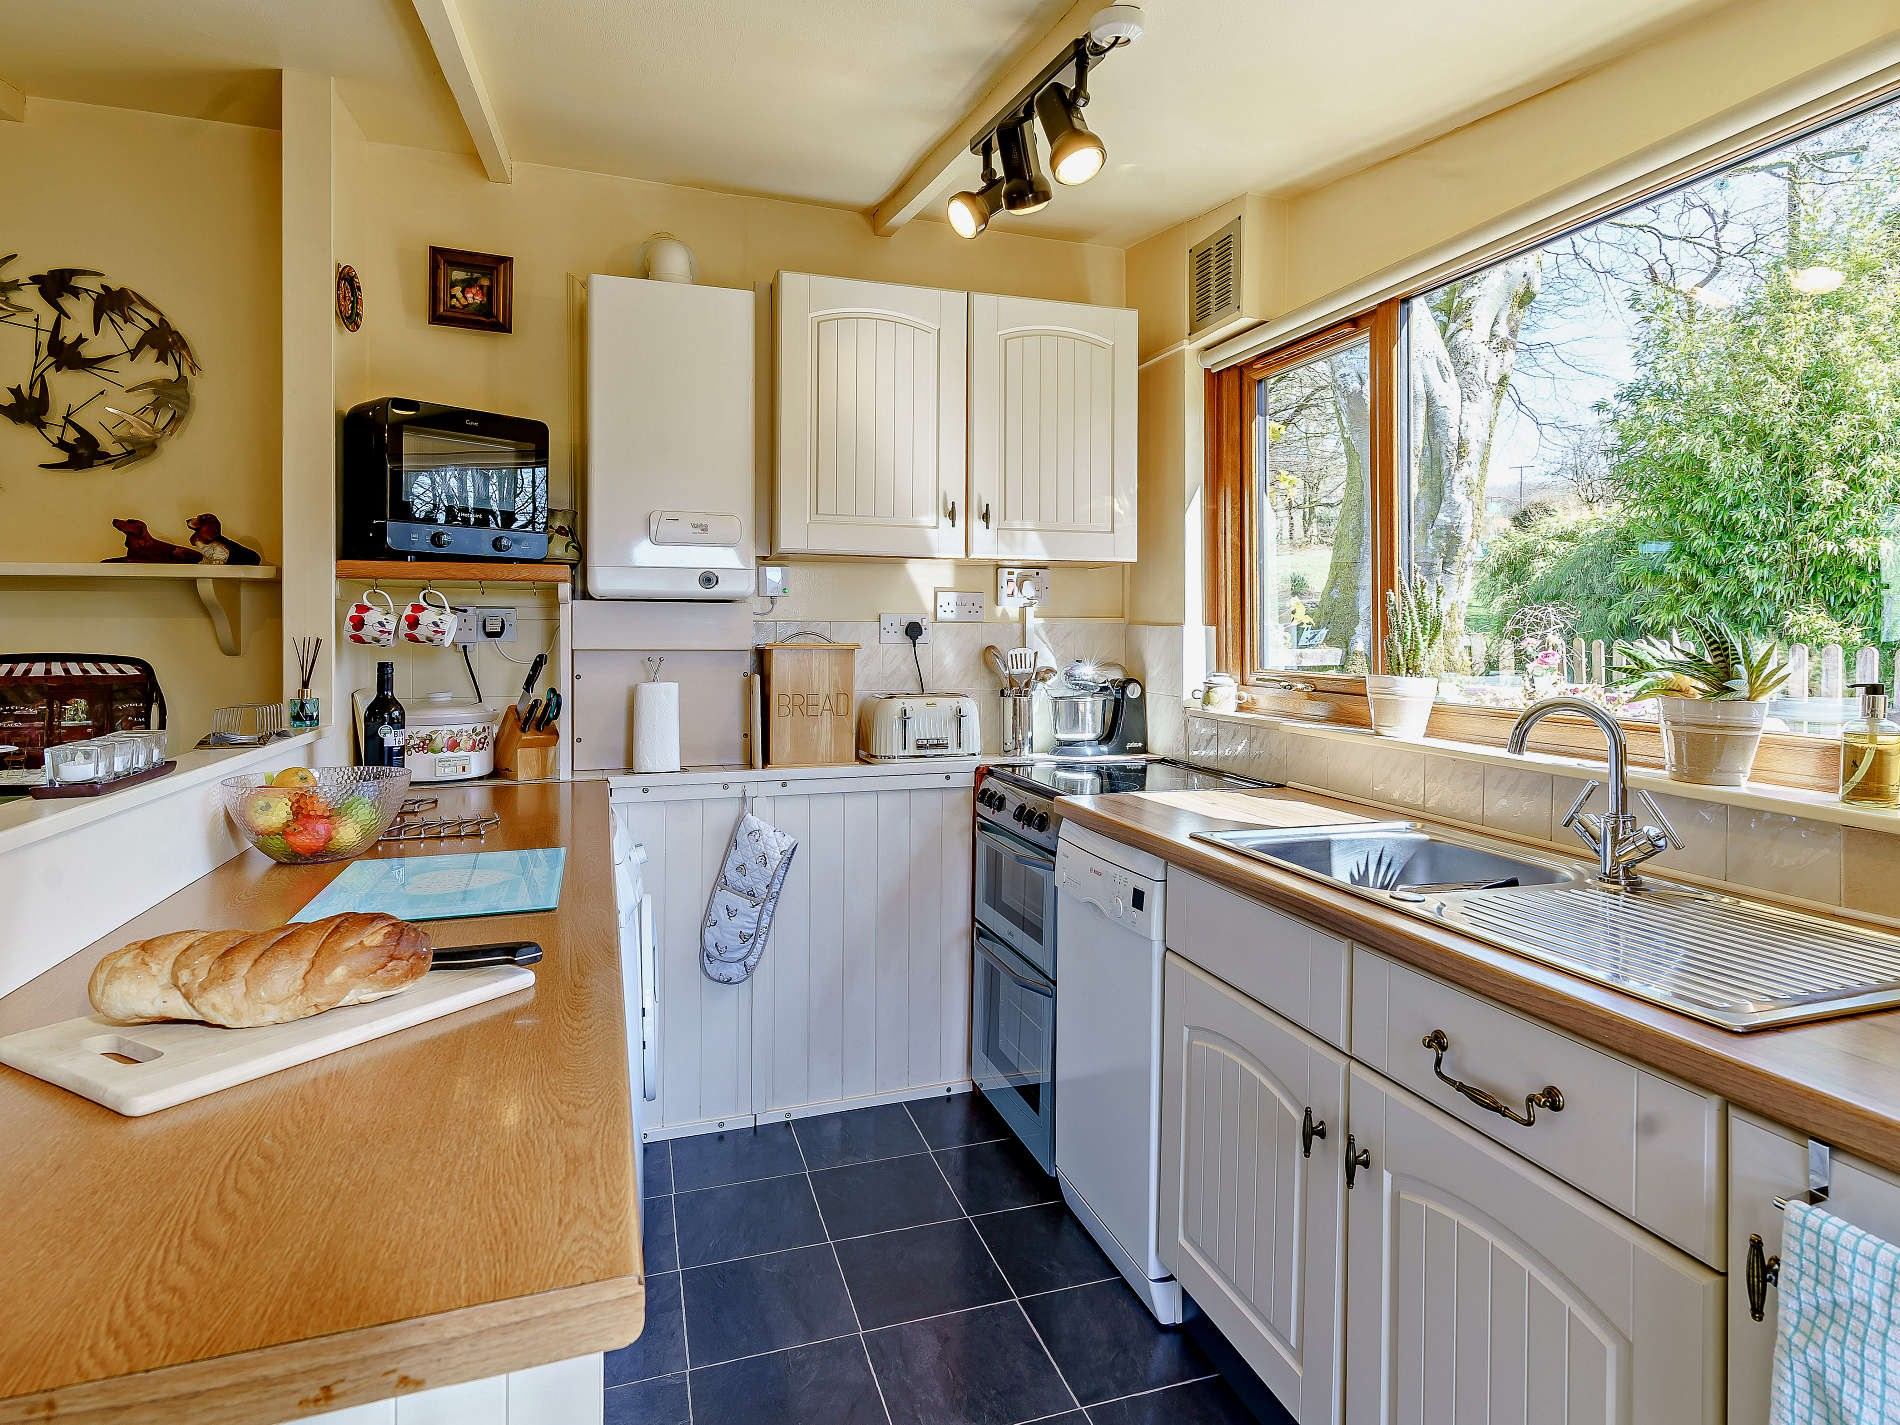 2 Bedroom Bungalow in West Wales, Pembrokeshire and the South